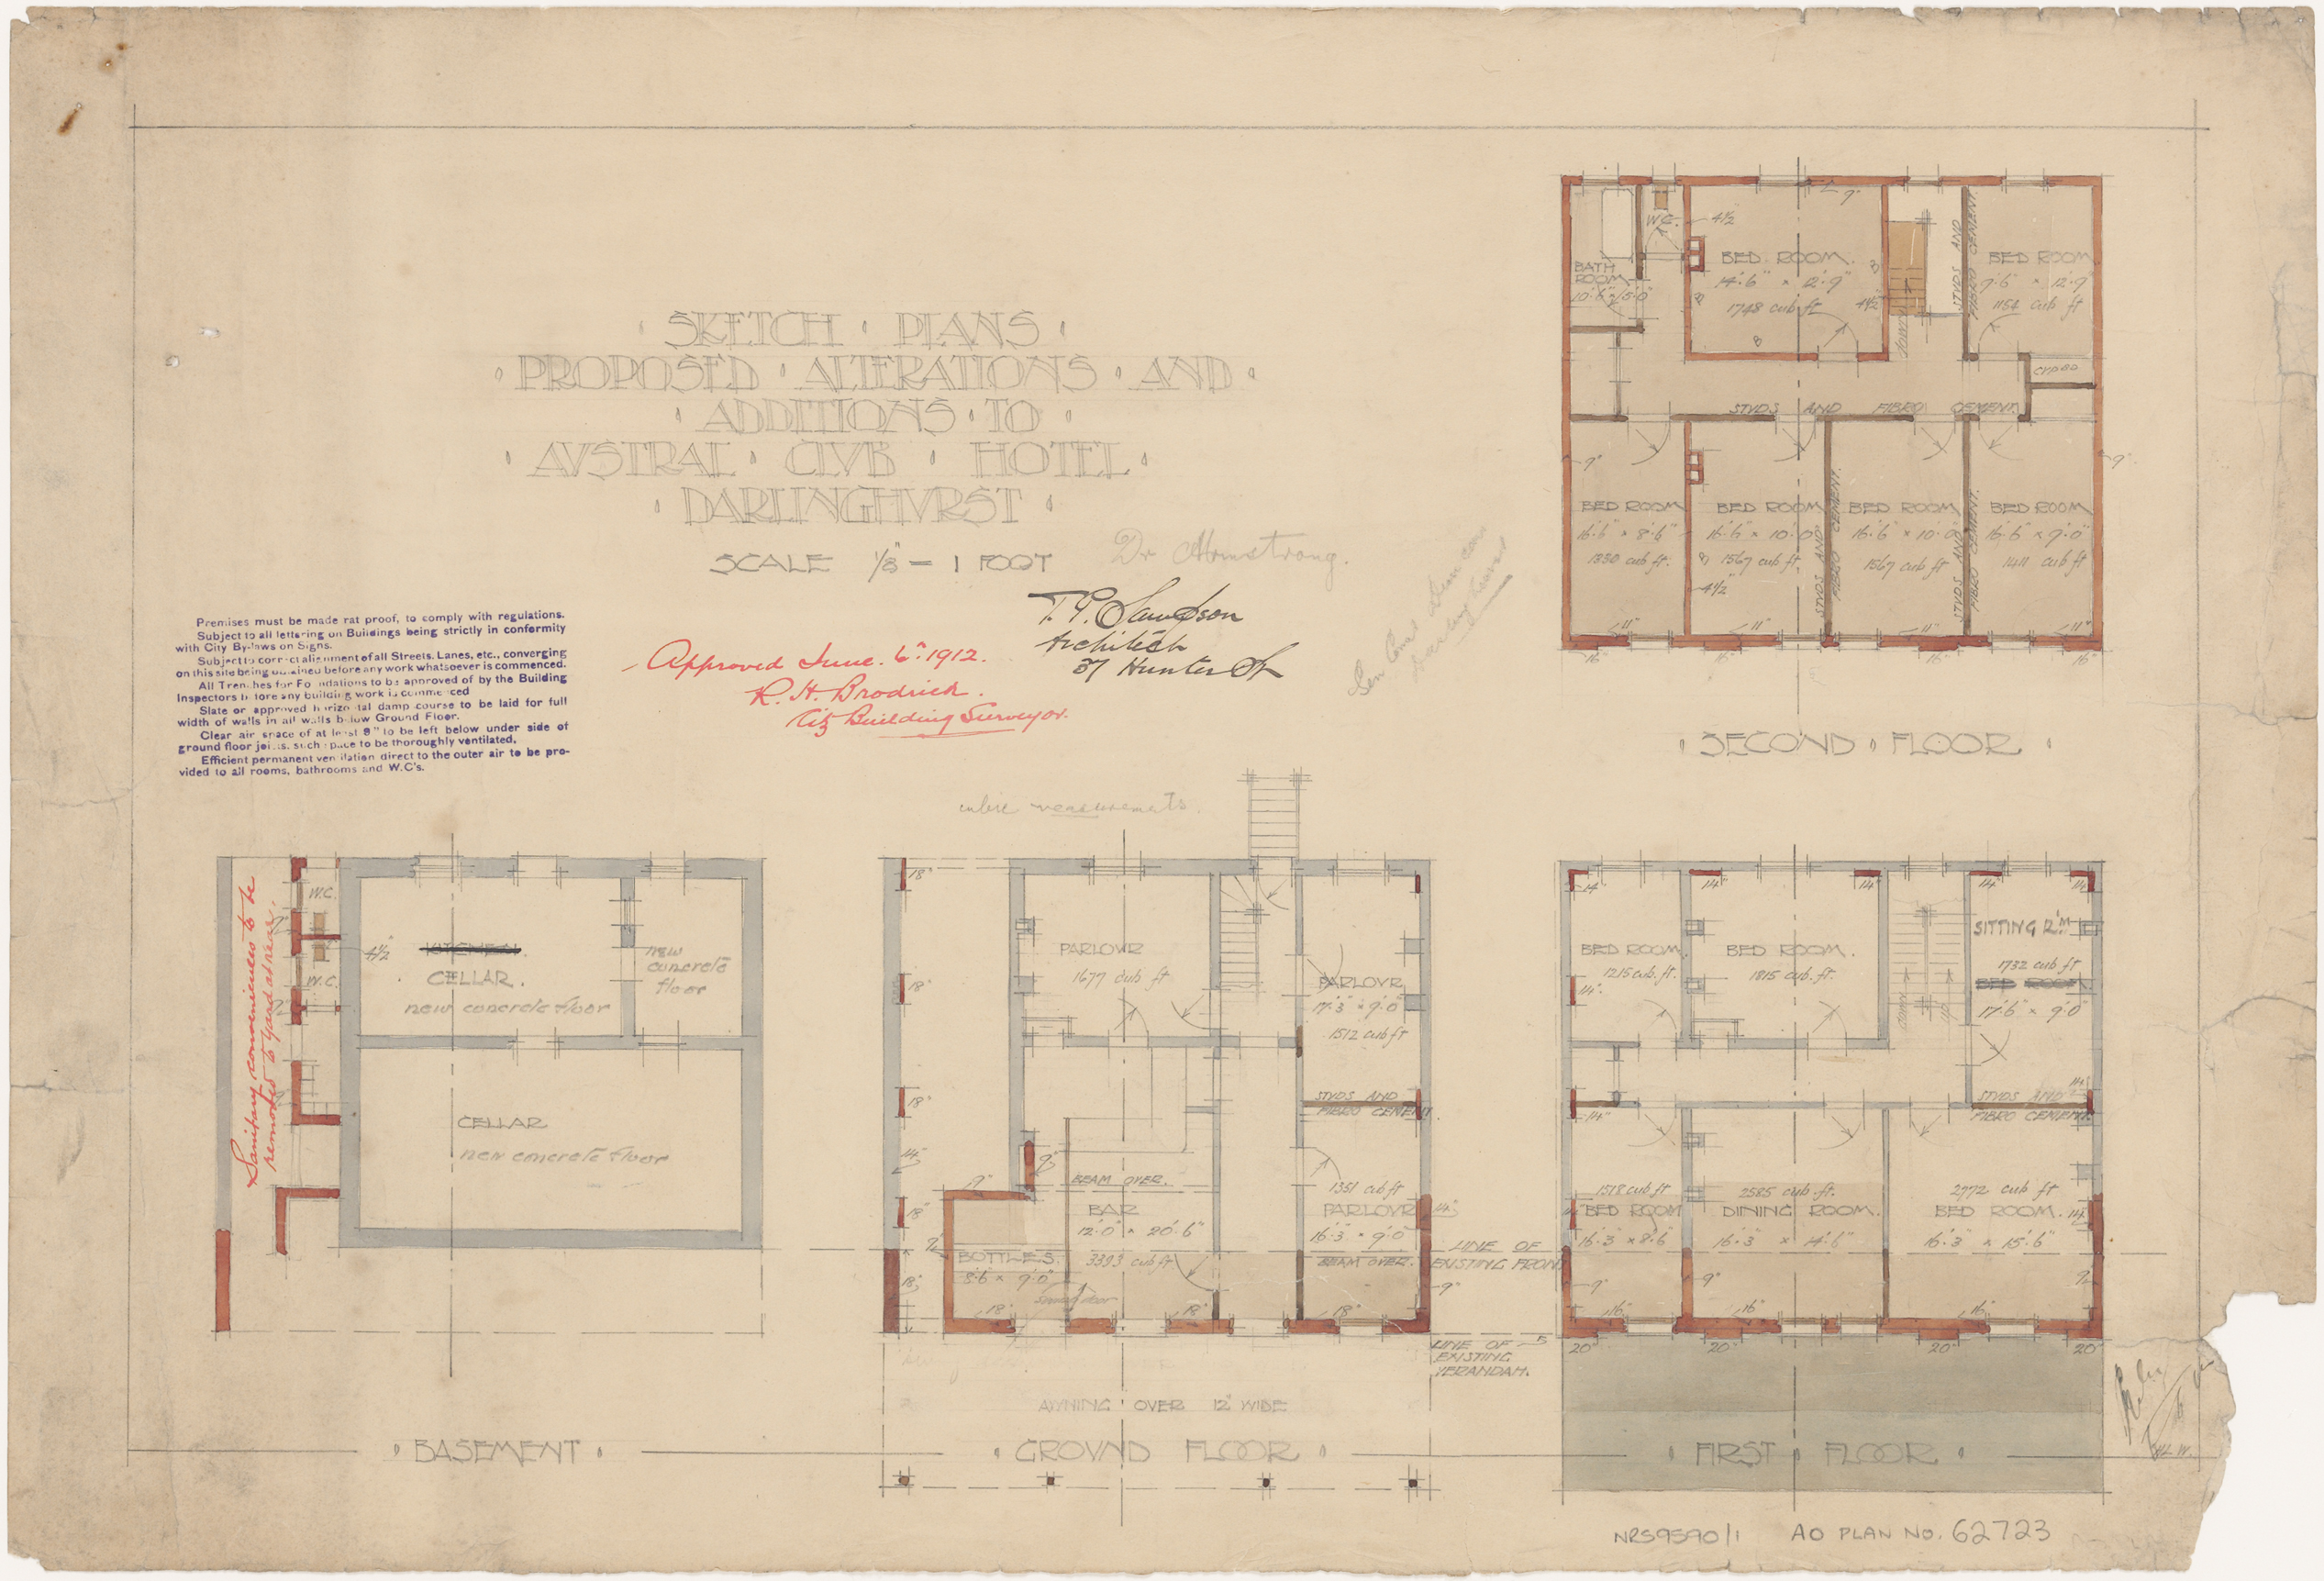 Austral Club Hotel, Darlinghurst, Proposed alterations and additions, basement, ground, first and second floor plans, Architect T P Sampson, 37 Hunter Street, Approved 6 June 1912